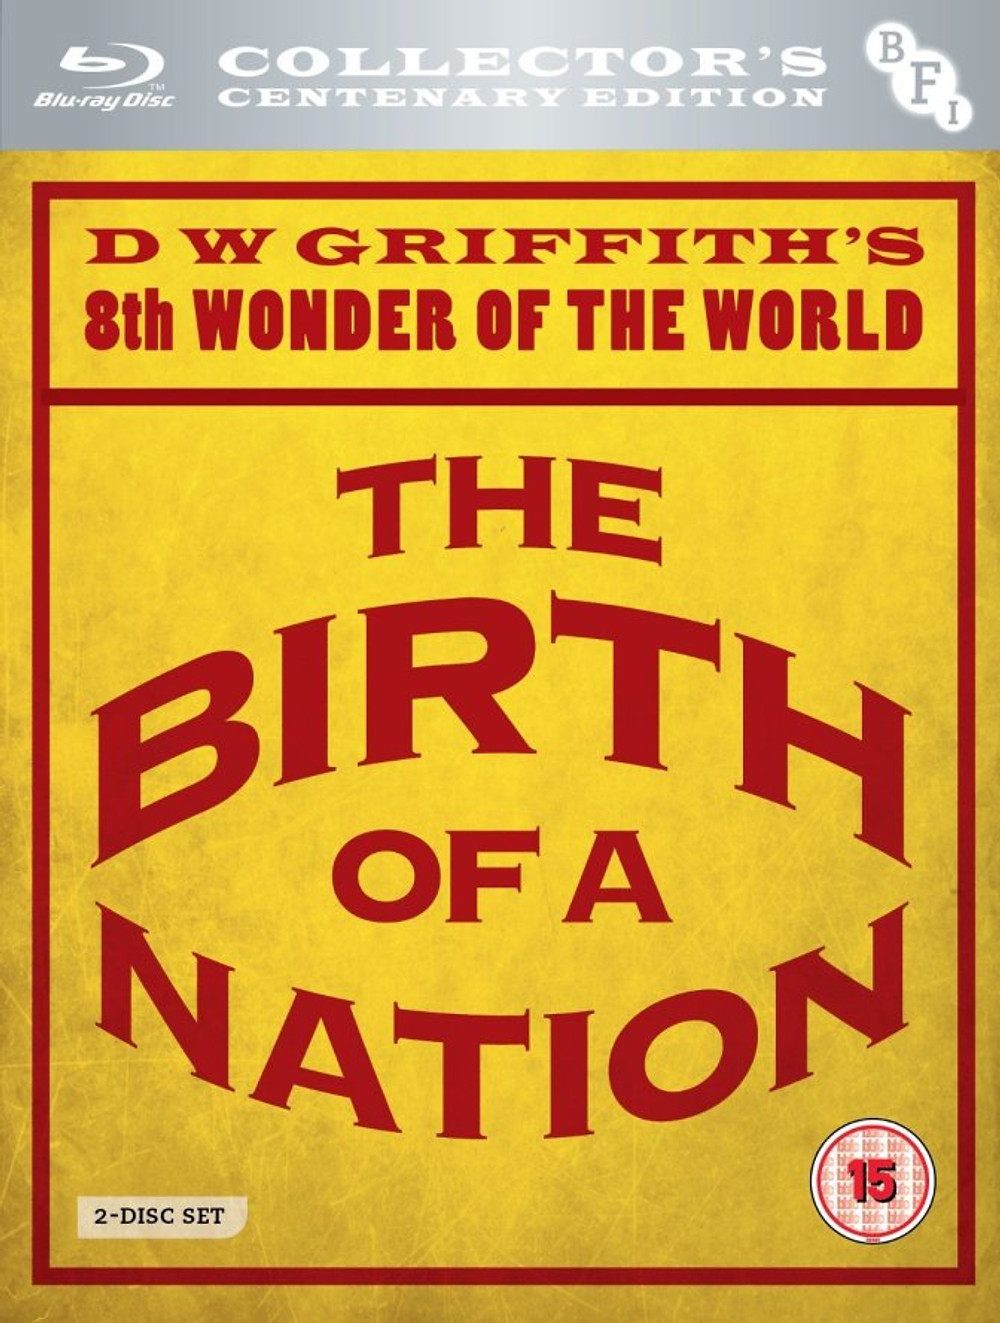 Birth of a nation bfi bluray cover